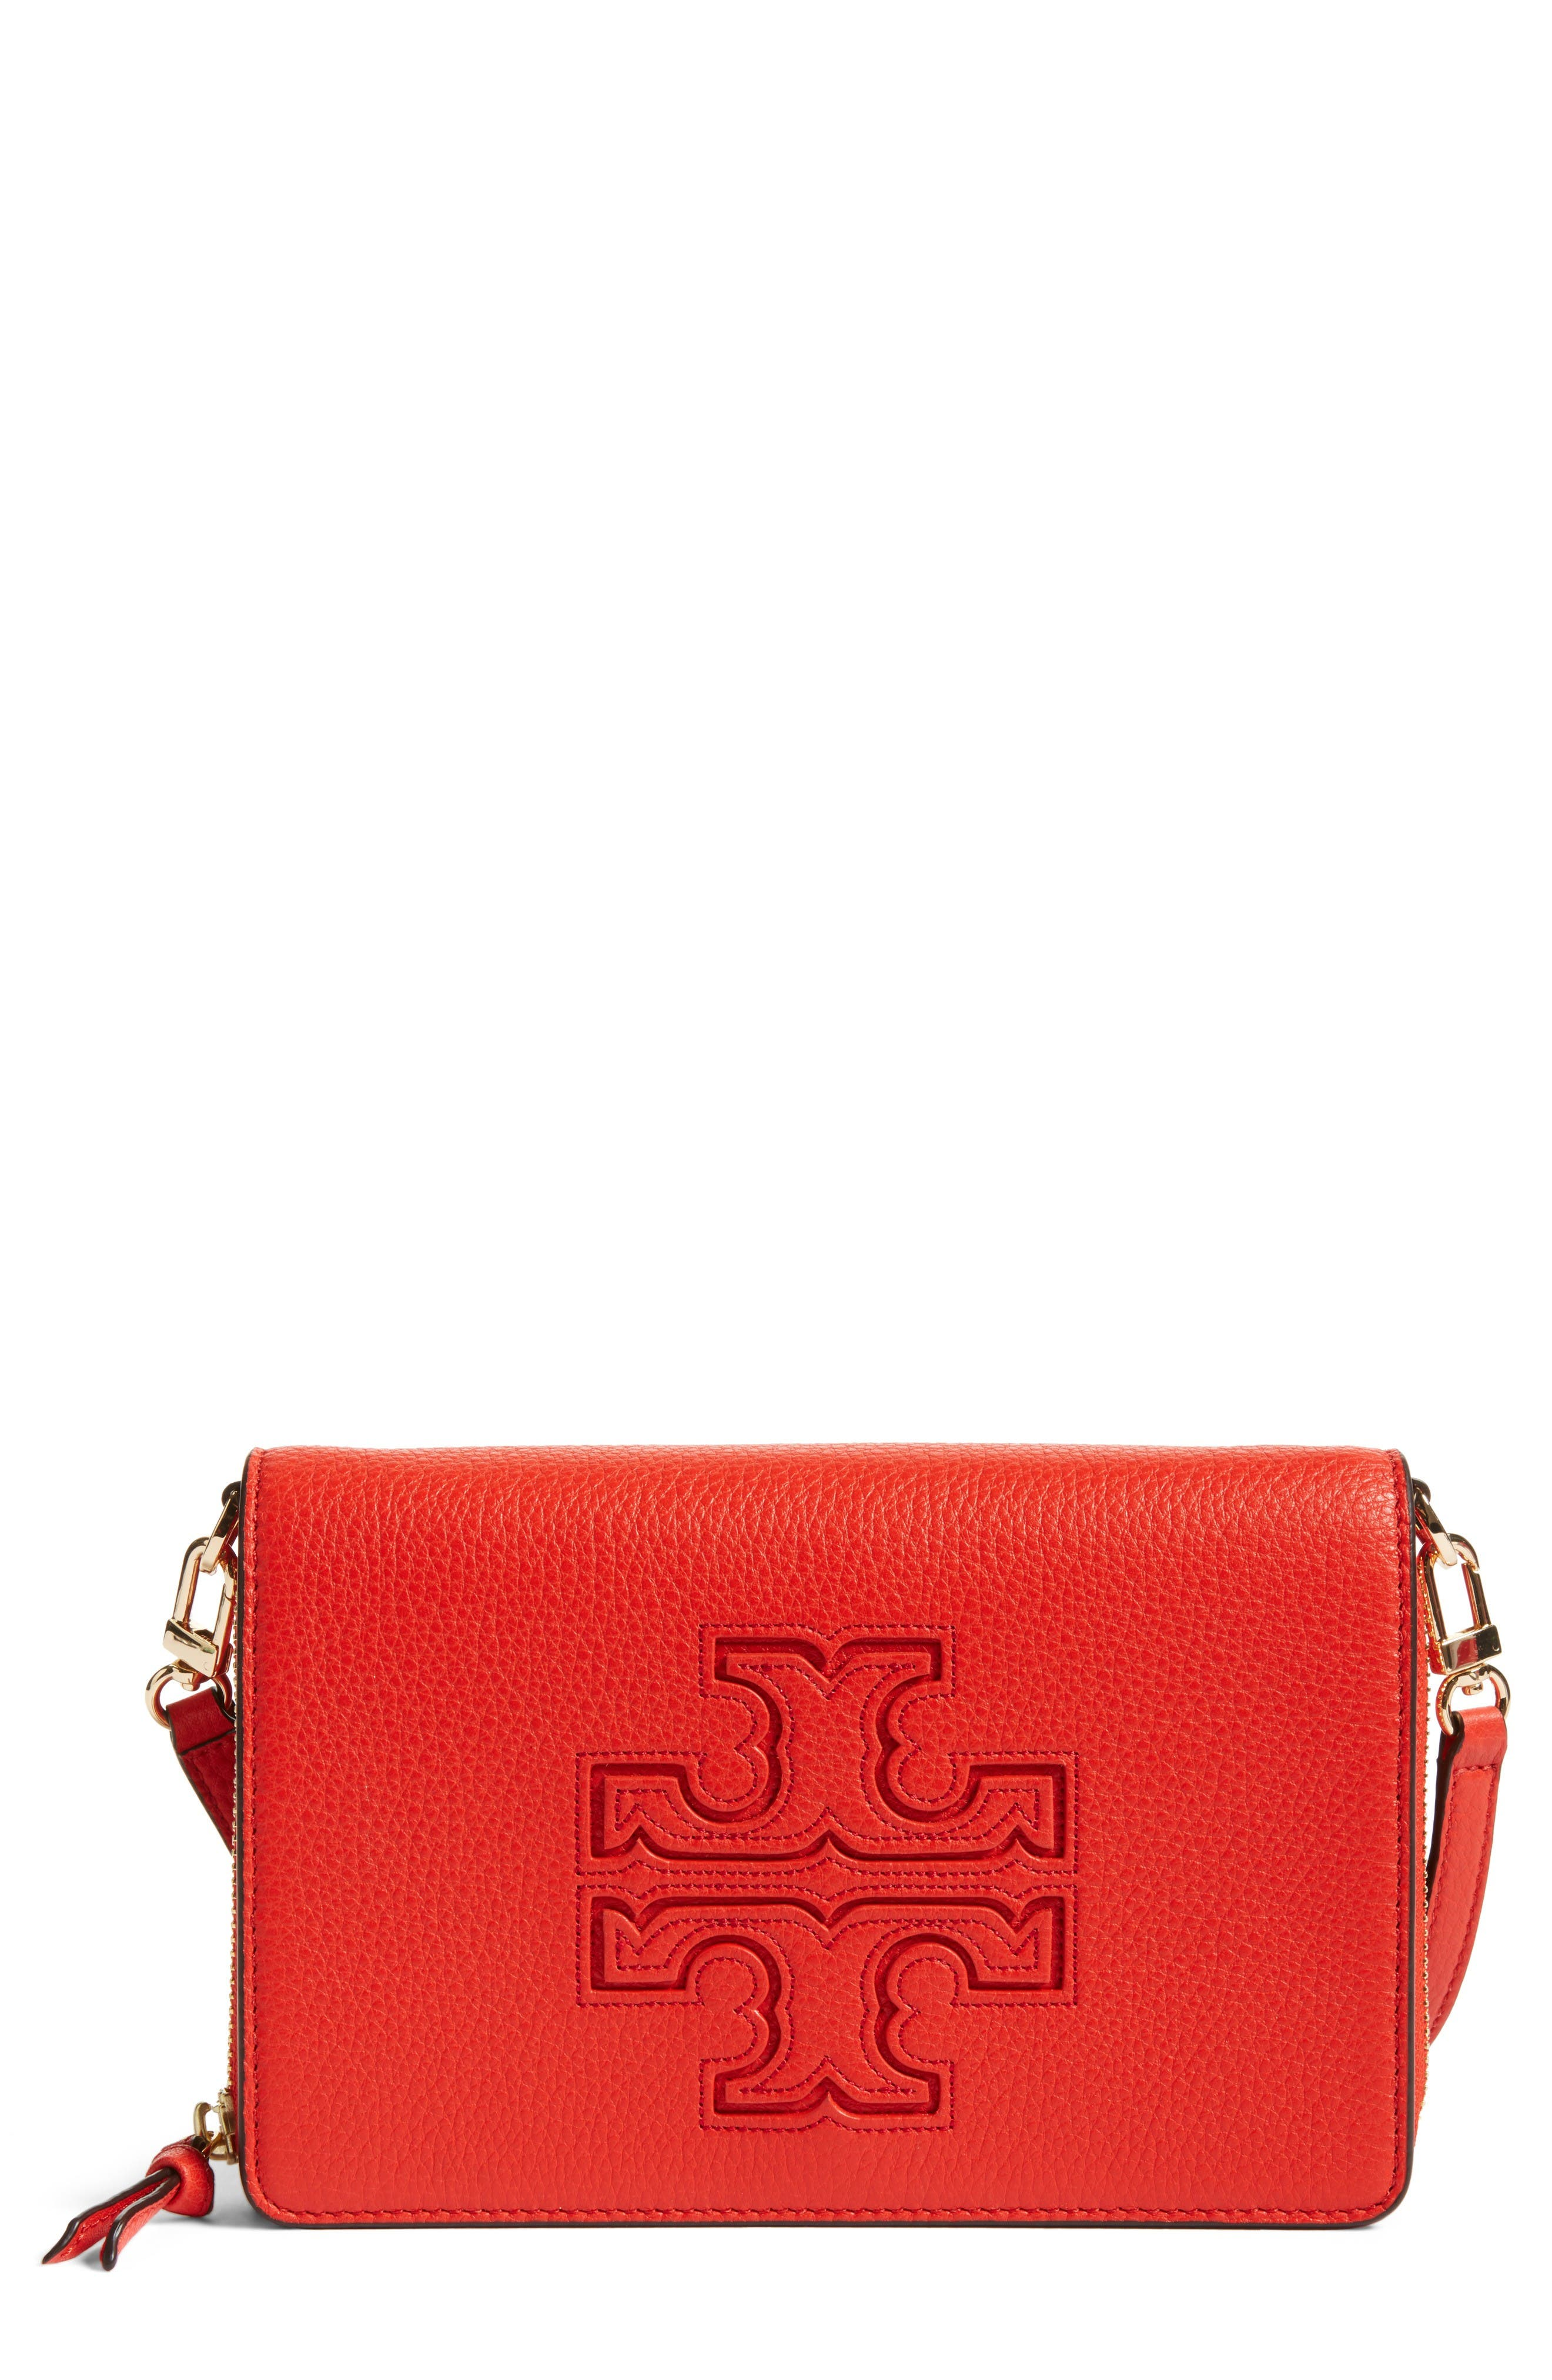 Alternate Image 1 Selected - Tory Burch 'Harper' Pebbled Leather Wallet Crossbody Bag